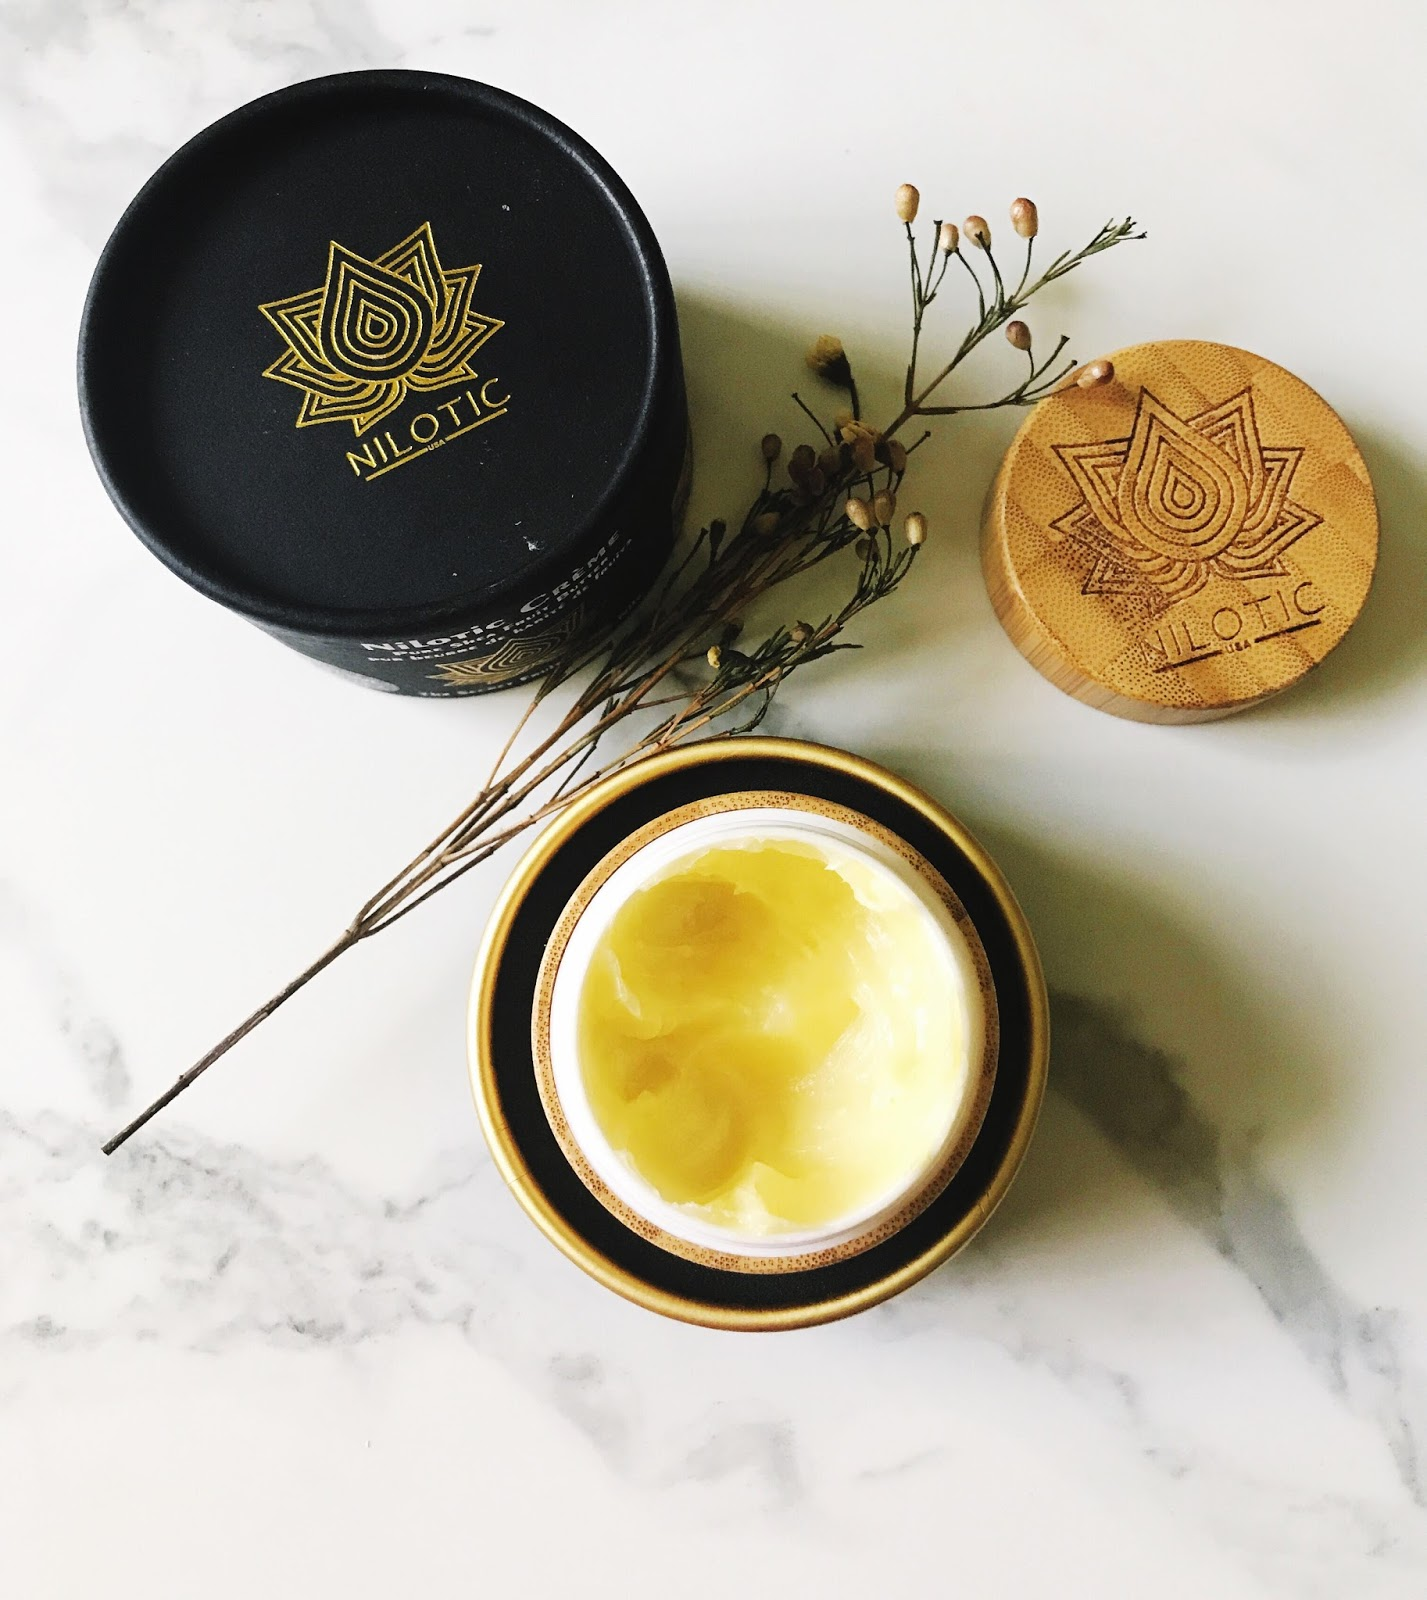 Nilotic body creme, vegan, good cause, skincare, luxury